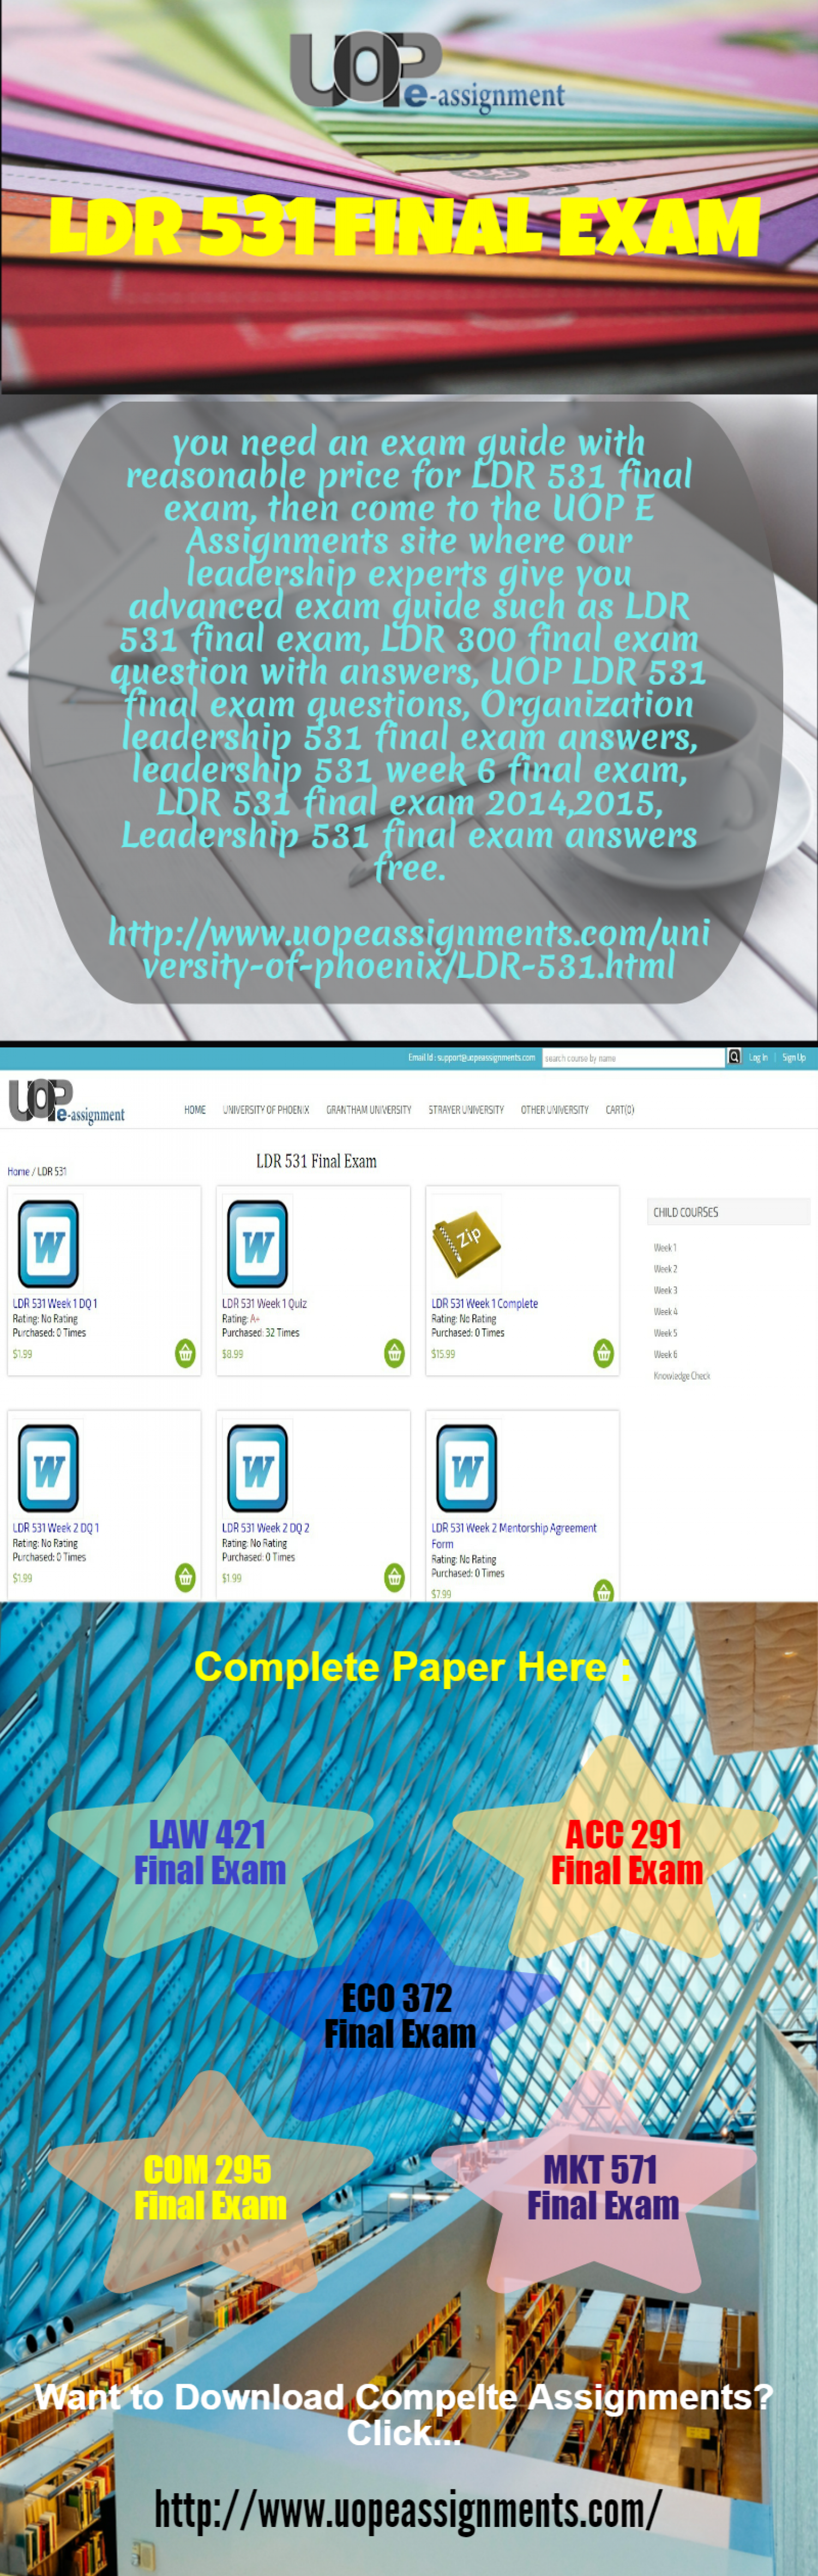 LDR 531 Final Exam - UOP E Assignments Infographic